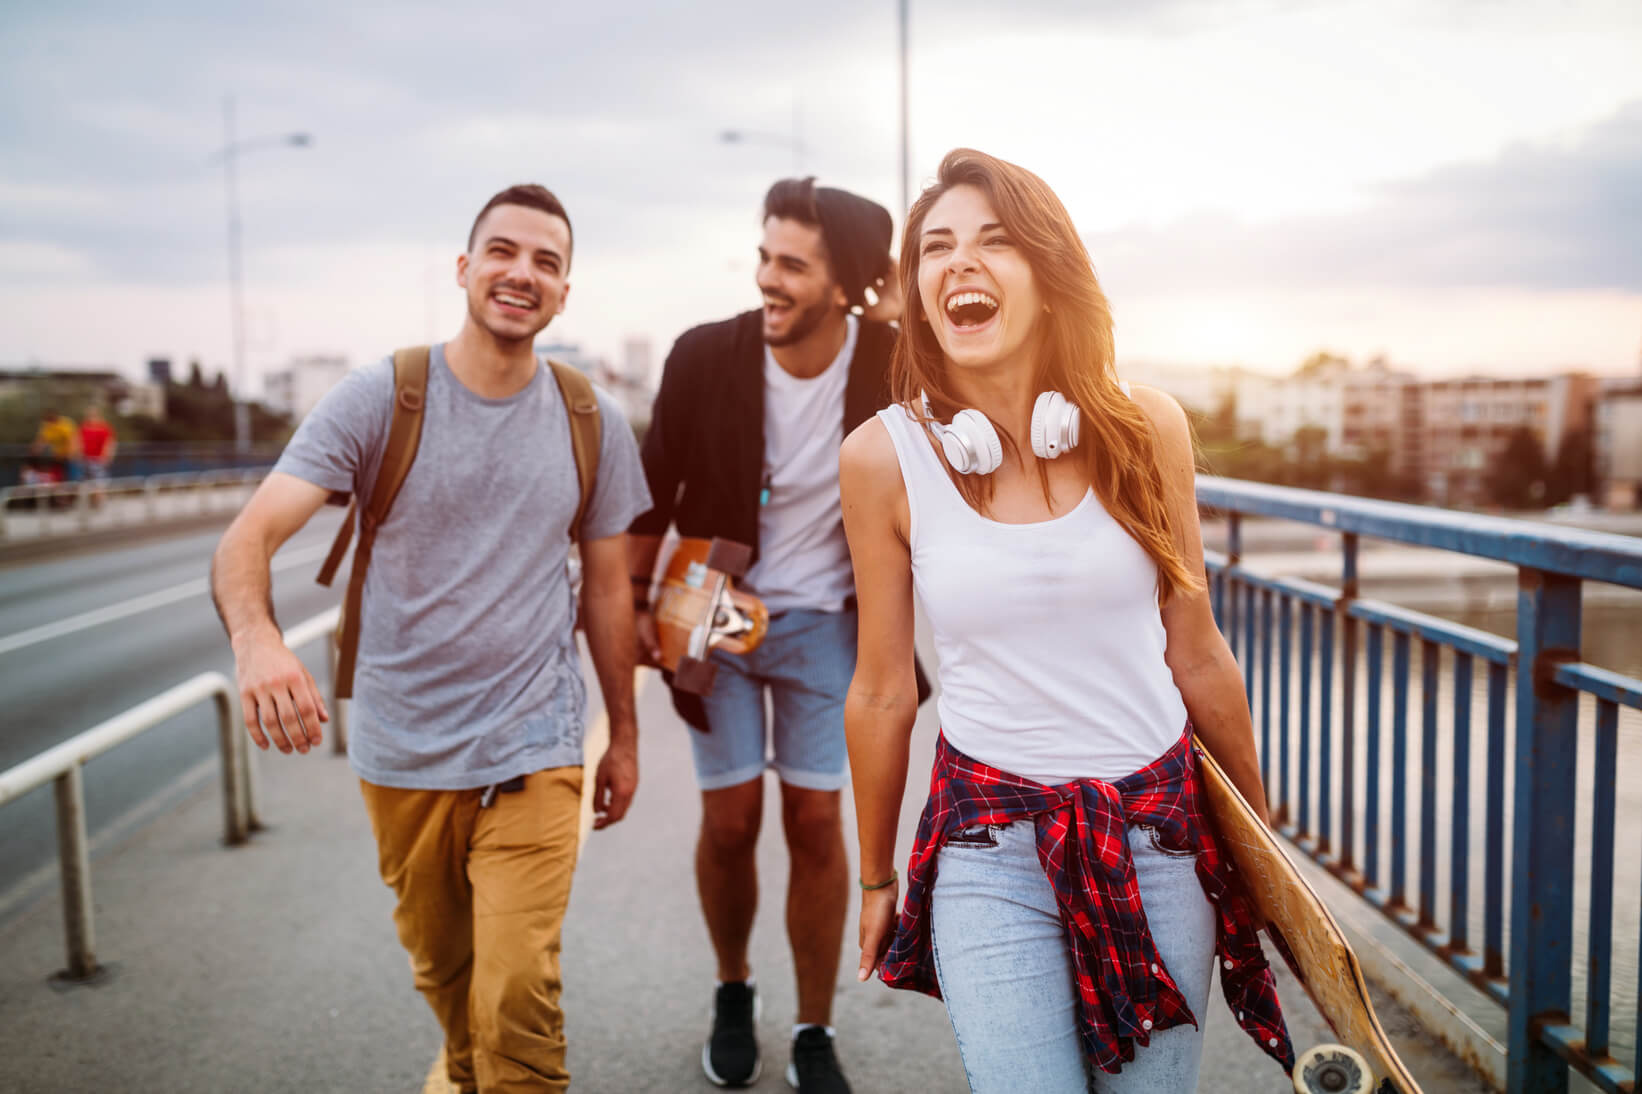 Three people walking and laughing